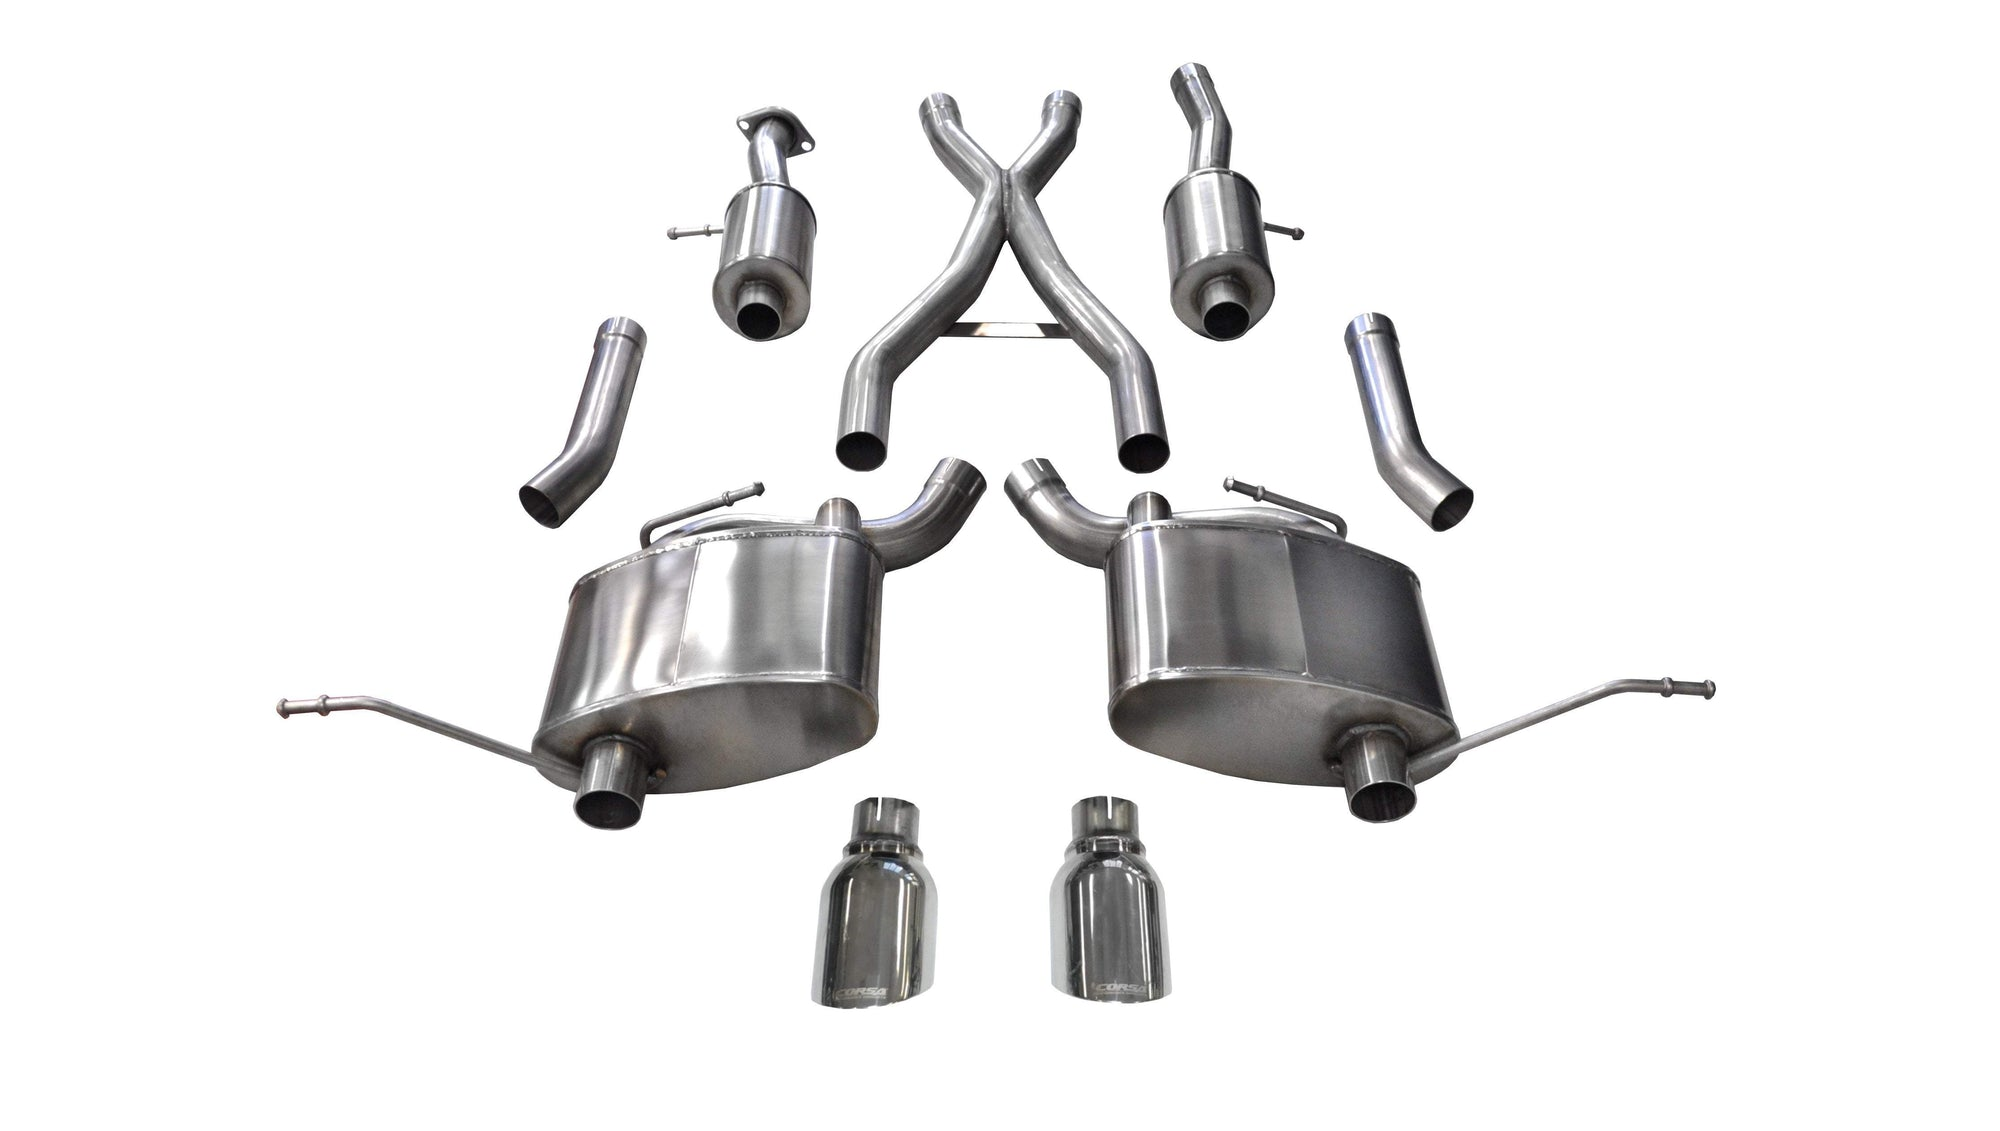 "CORSA PERFORMANCE Cat-Back Exhaust Polished / Sport / Dual Rear - Single 4.5in 2011-2019 Jeep Grand Cherokee 5.7L V8, 2.5"" Dual Rear Exit Catback Exhaust System with Single 4.5"" Tips (14991) Sport Sound Level"